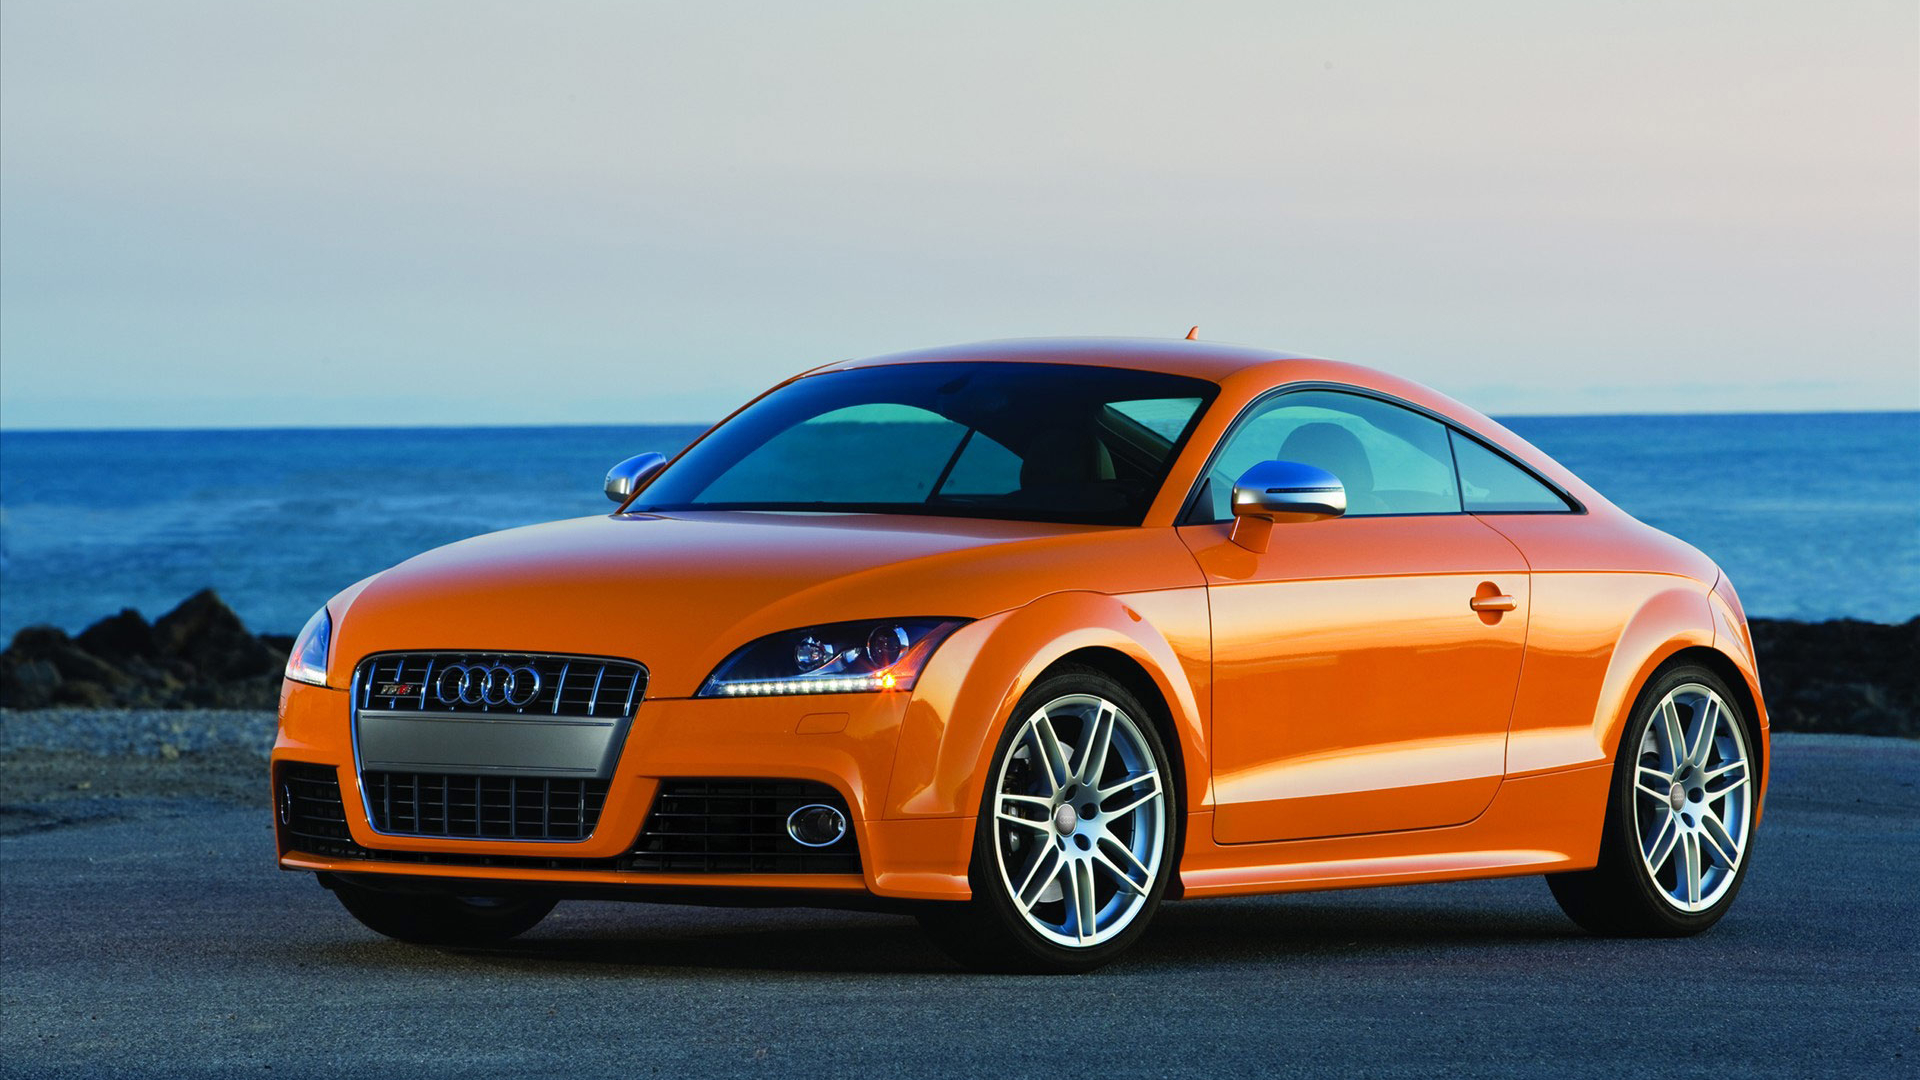 Collection Of Audi Wallpapers Hd Wallpapers Audi On